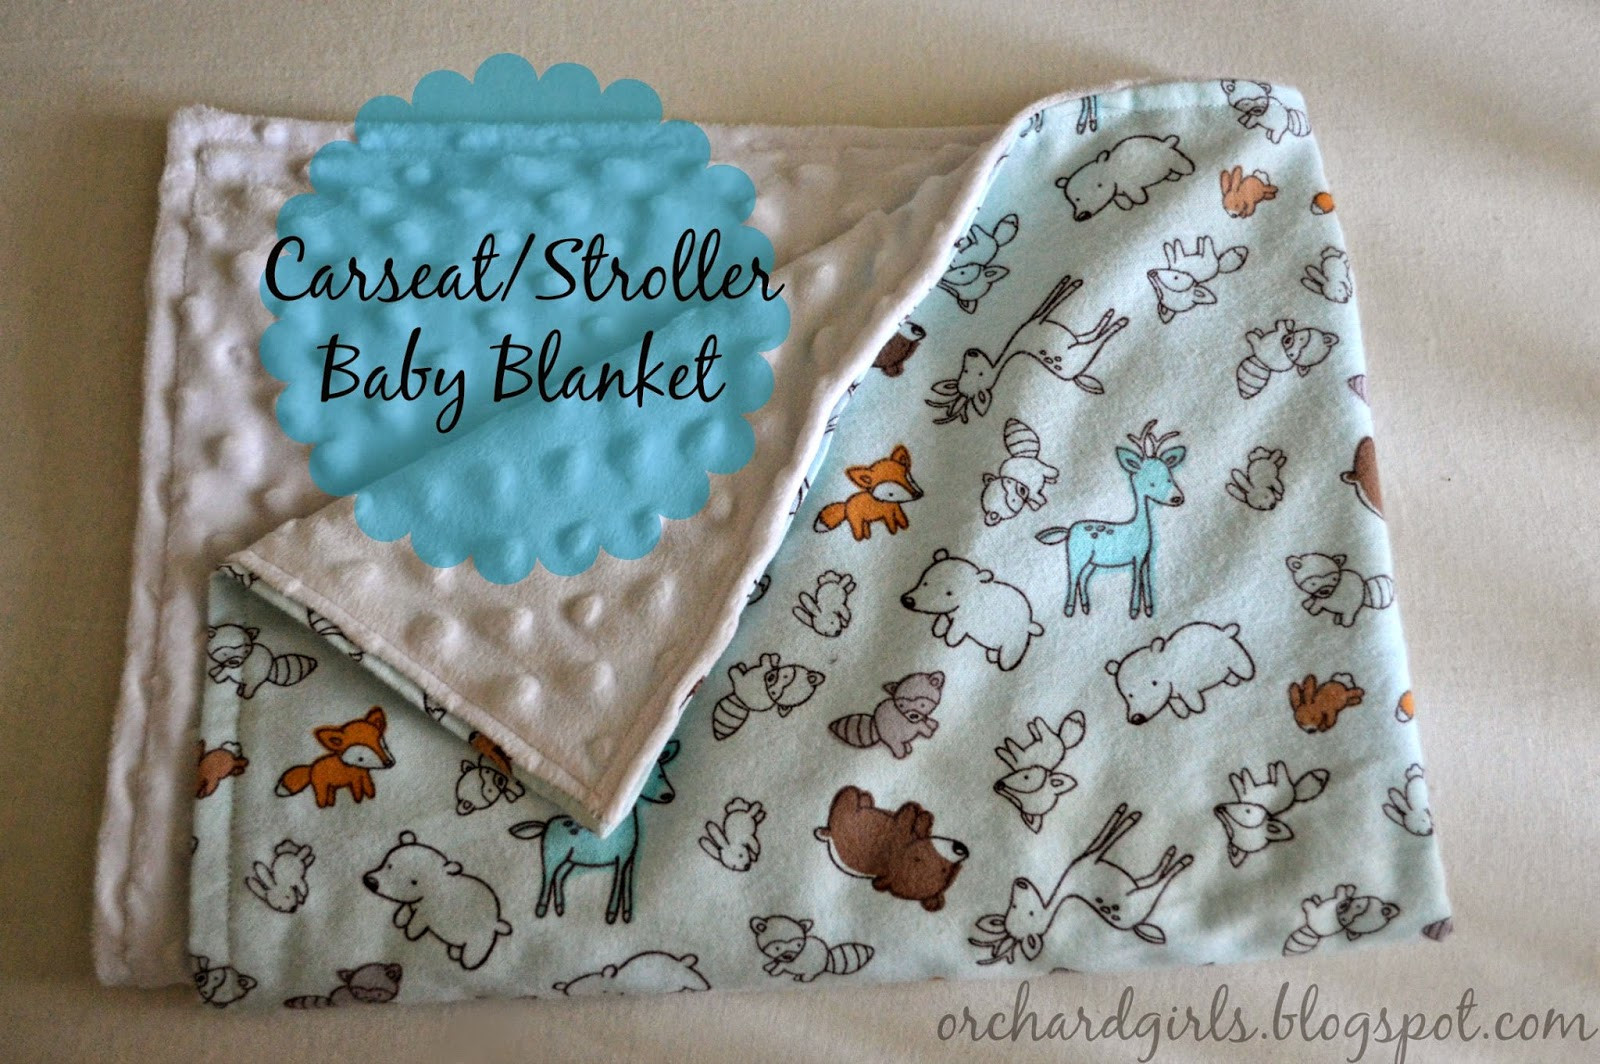 Best ideas about DIY Baby Blanket . Save or Pin Orchard Girls Super easy DIY Baby Blanket Tutorial with Now.